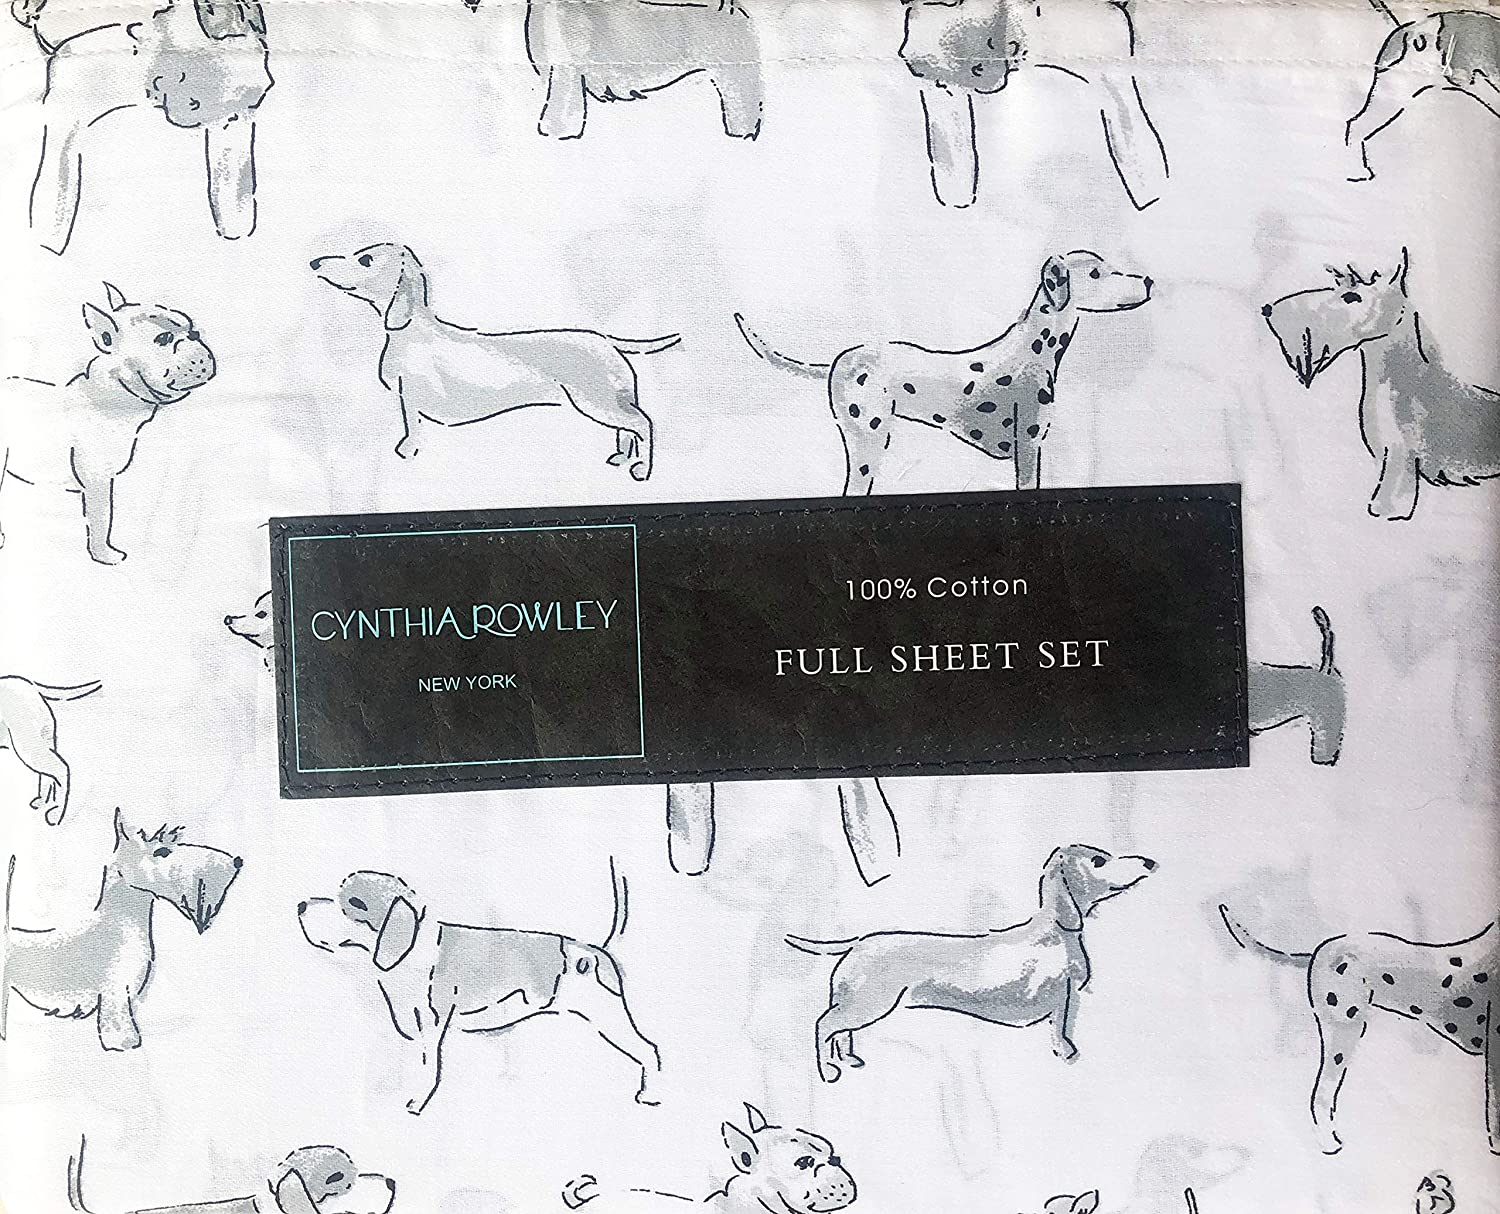 Cynthia Rowley Bedding 4 Piece Full Size Bed Sheet Set Gray Dogs Puppies Dalmatians Scotties Poodles in Shades of Gray on White